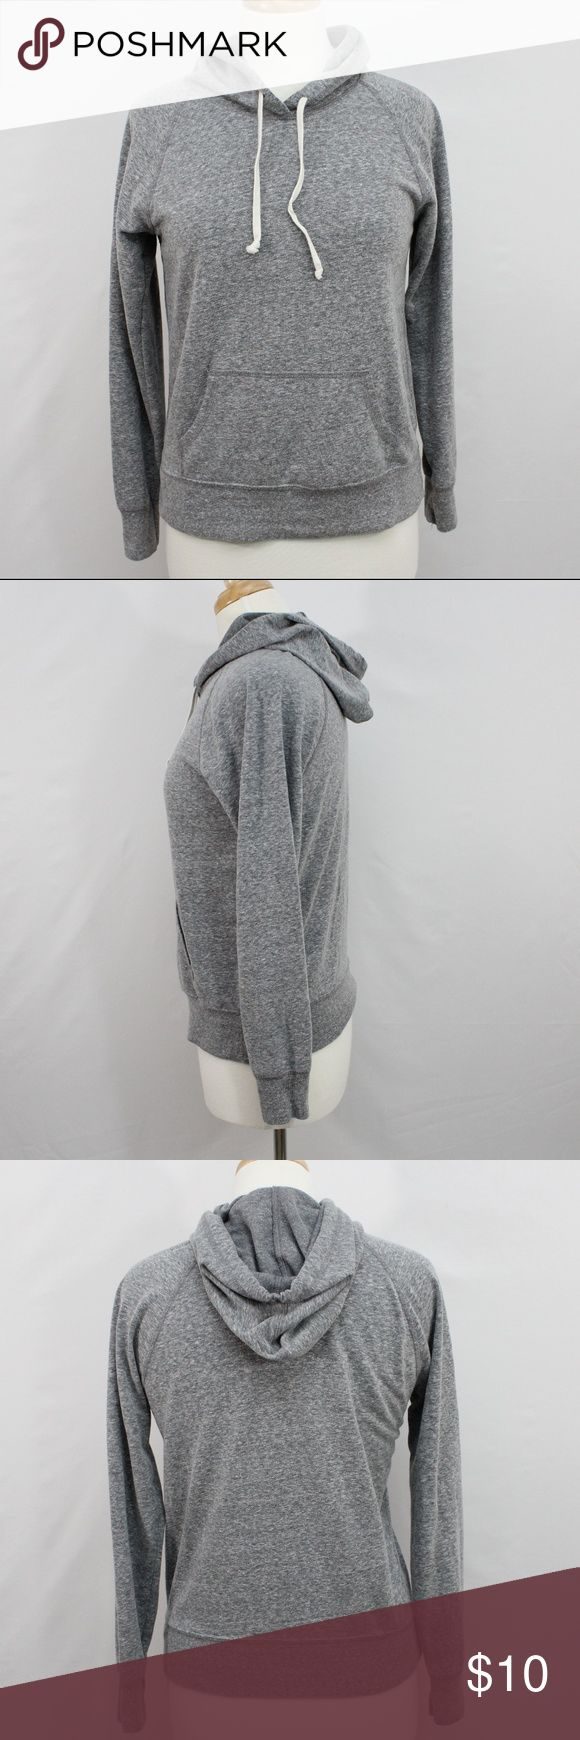 Old Navy Gray Athletic Hoodie Size Small Old Navy Gray Athletic Hoodie Size Small   Across the chest is approx 17.5 inches Length is approx 21.75 inches Sleeve length is approx 25.25 inches from neck seam Sleeve inseam is approx 18 inches  57/43 cotton/polyester, exclusive of decoration  (location 179) Old Navy Tops Sweatshirts & Hoodies